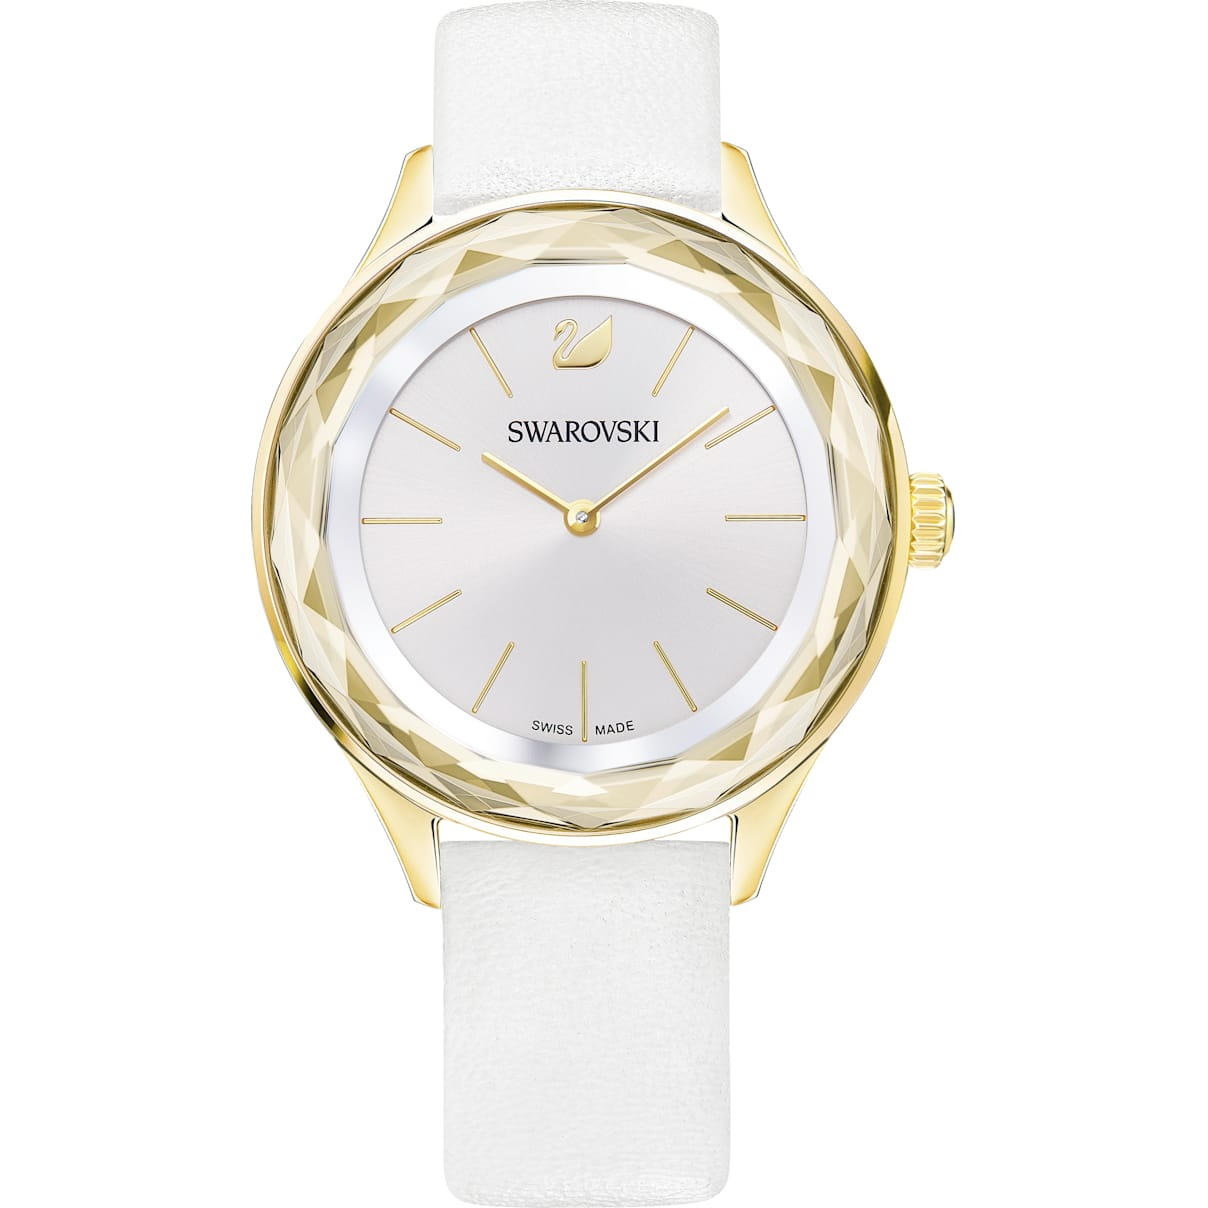 Swarovski Octea Nova Watch, Leather strap, White, Gold-tone PVD